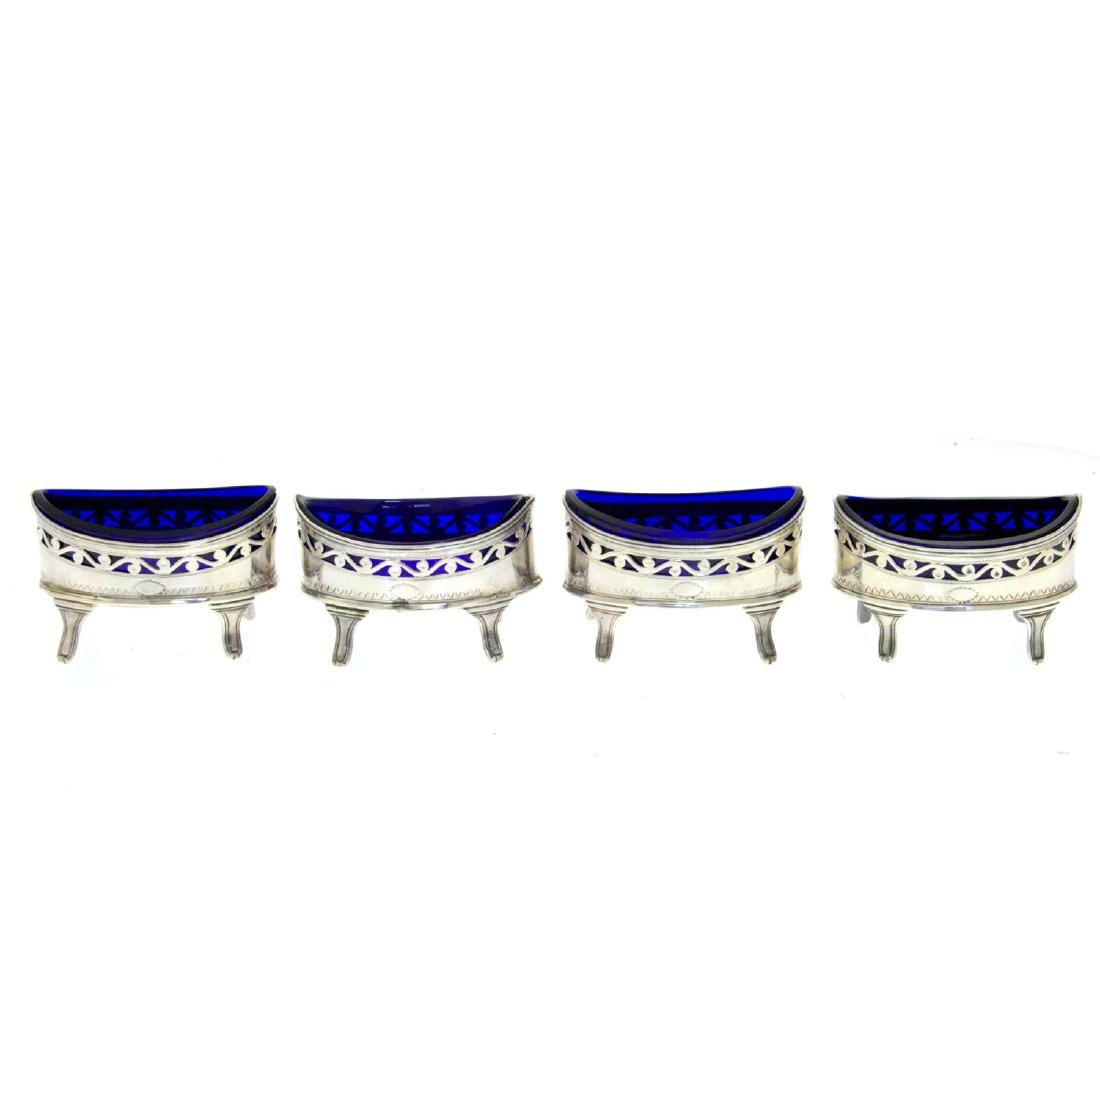 George III Sterling Silver 4 Salt Cellars Set, London,